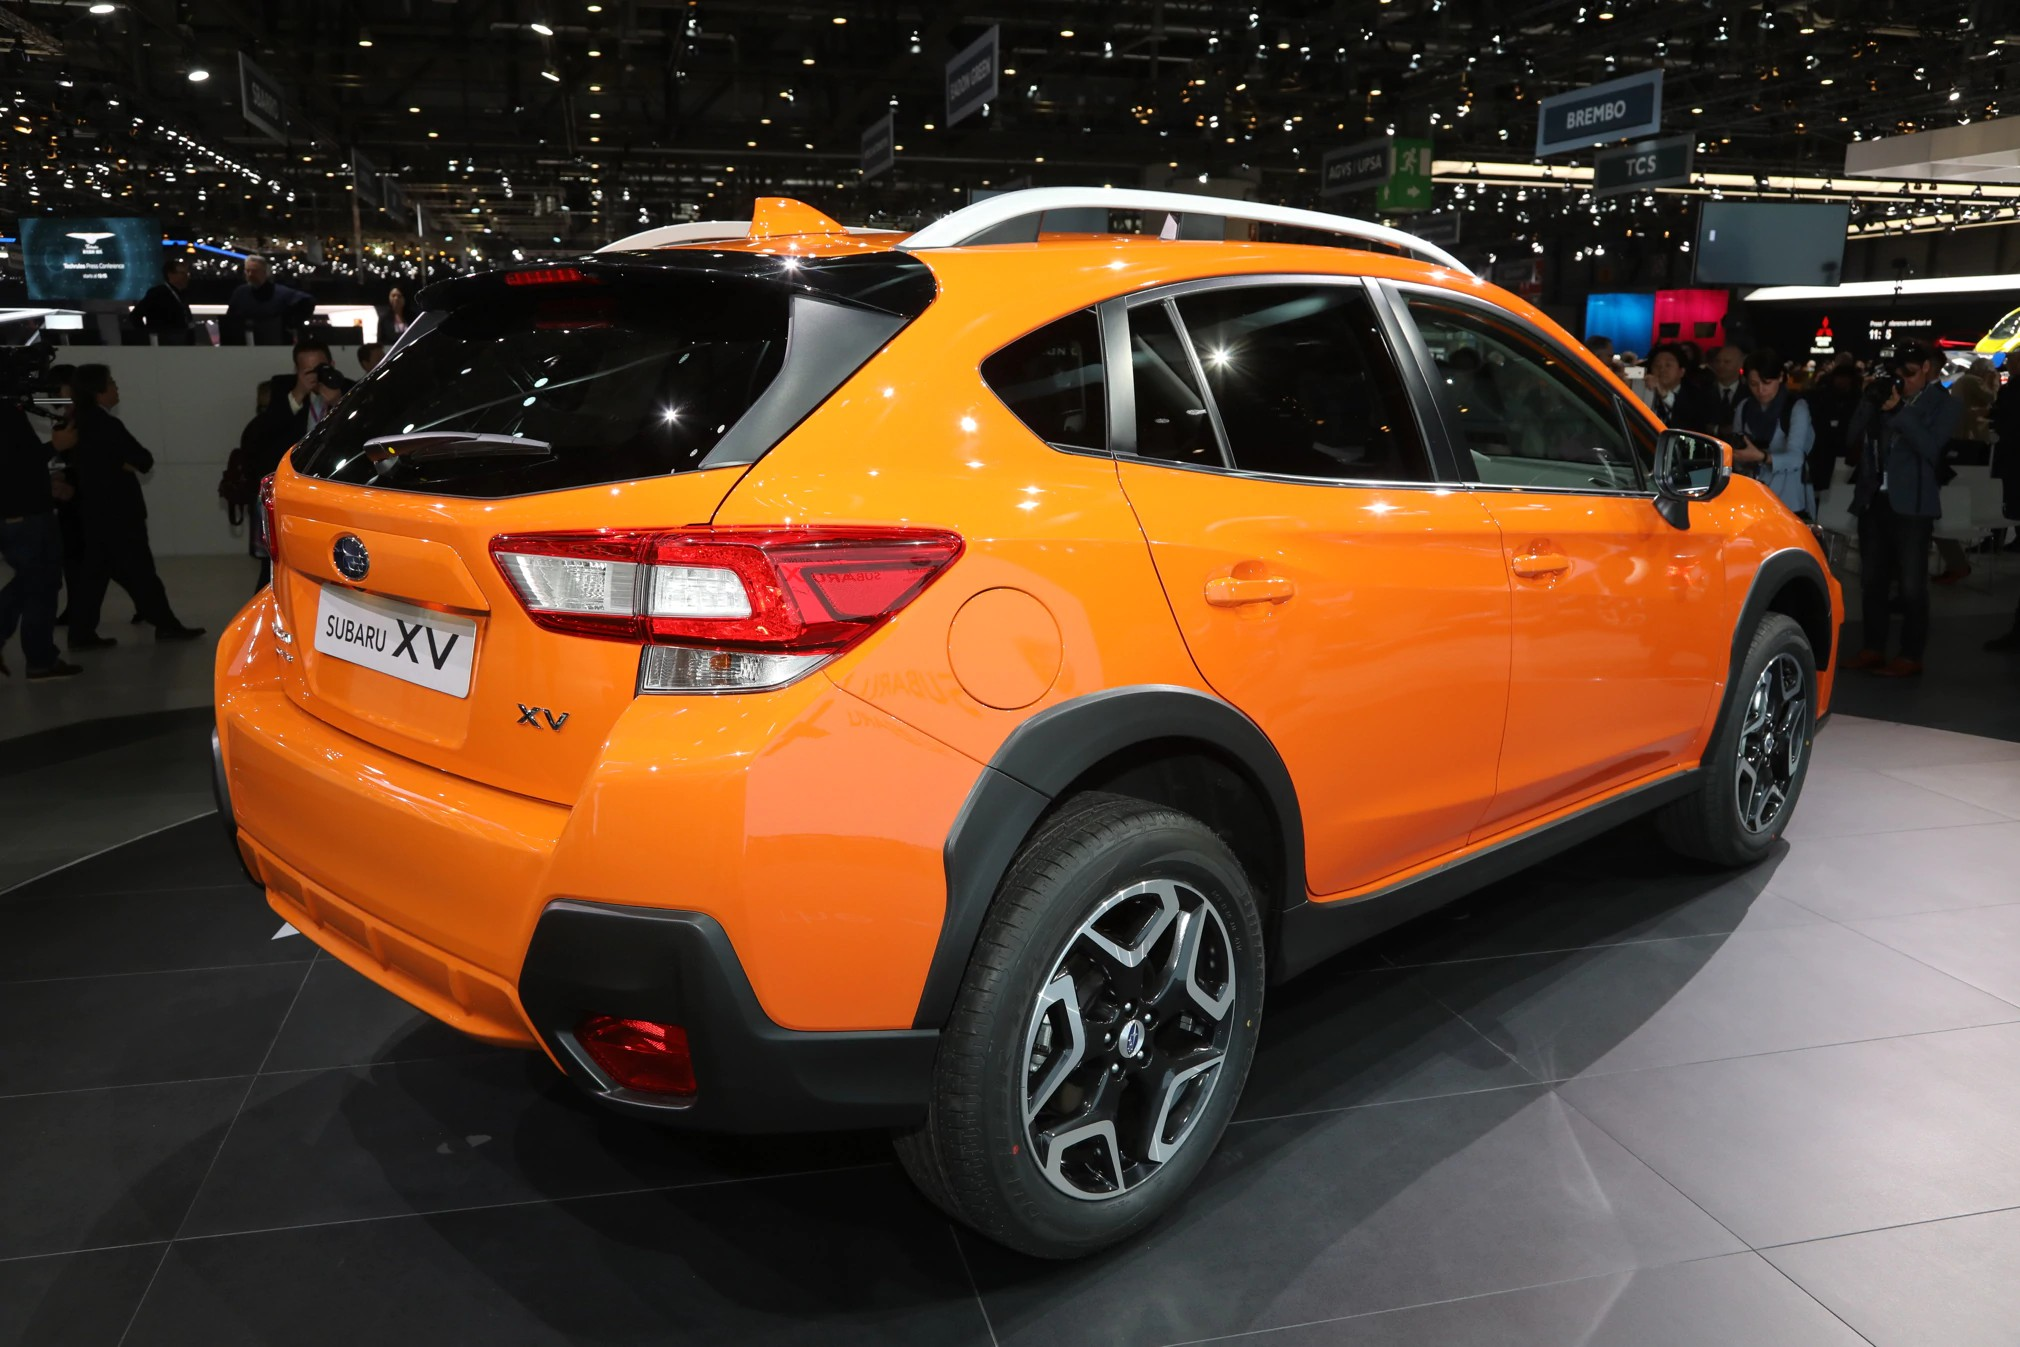 2018-Subaru-Crosstrek-Euro-Spec-rear-three-quarters.jpg